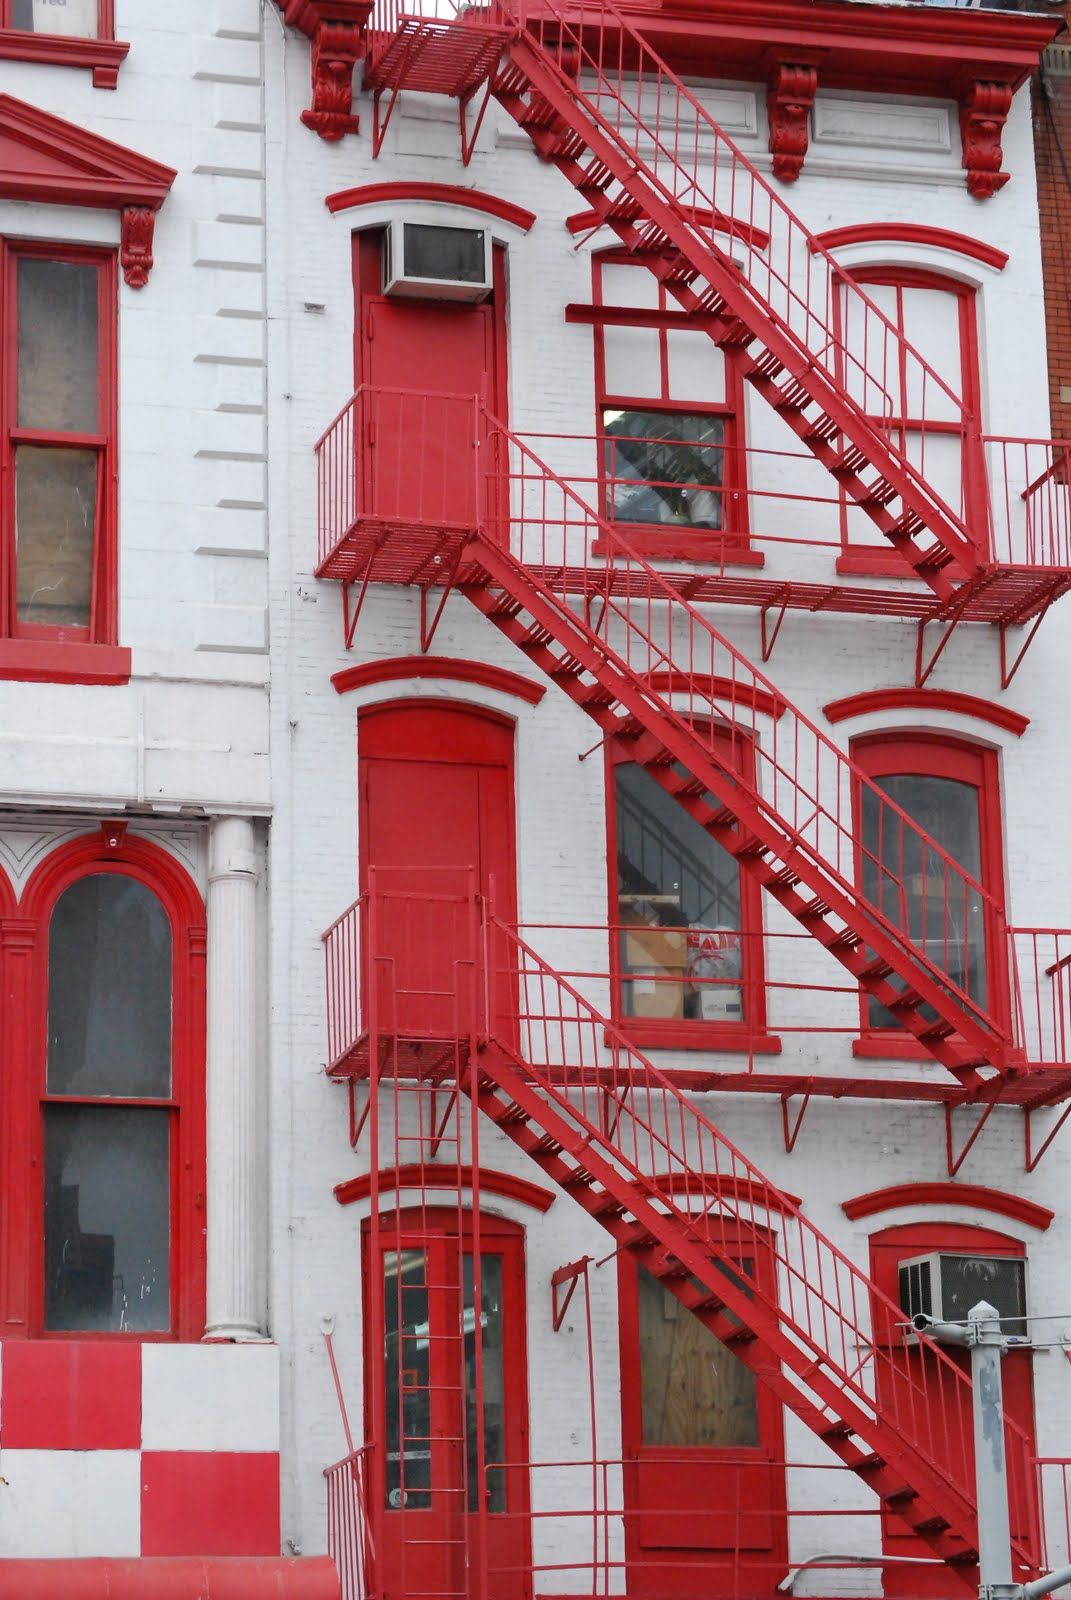 Charmant NYC ♥ NYC: Fire Escape Stairs In SoHo And Chinatown